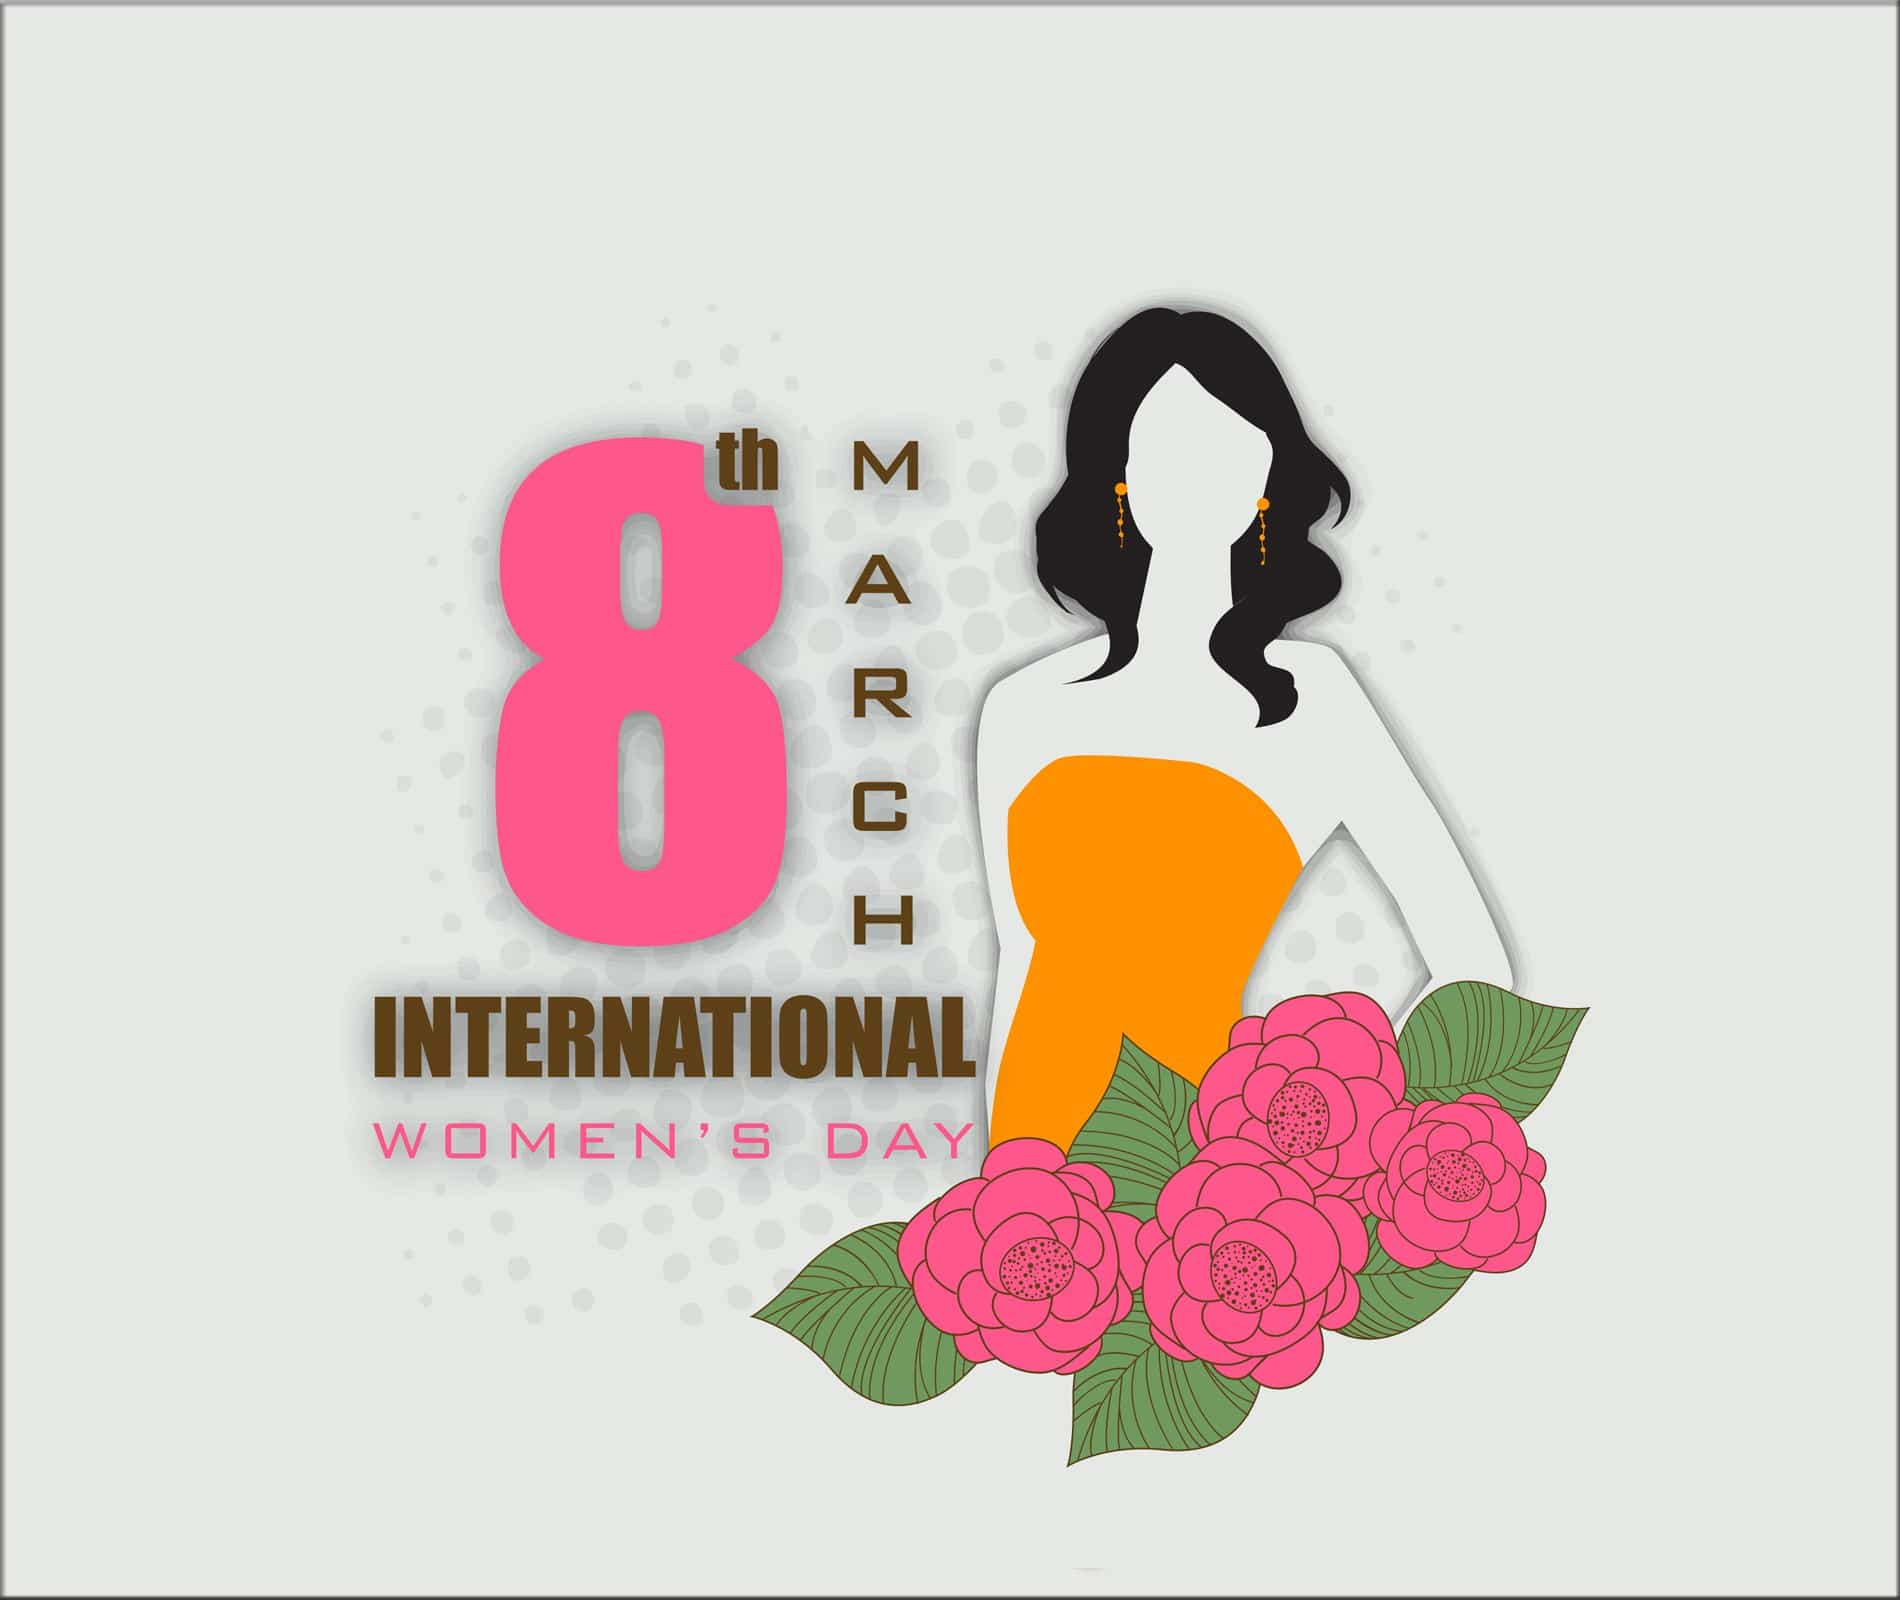 Women's Day Photo and Desktop images